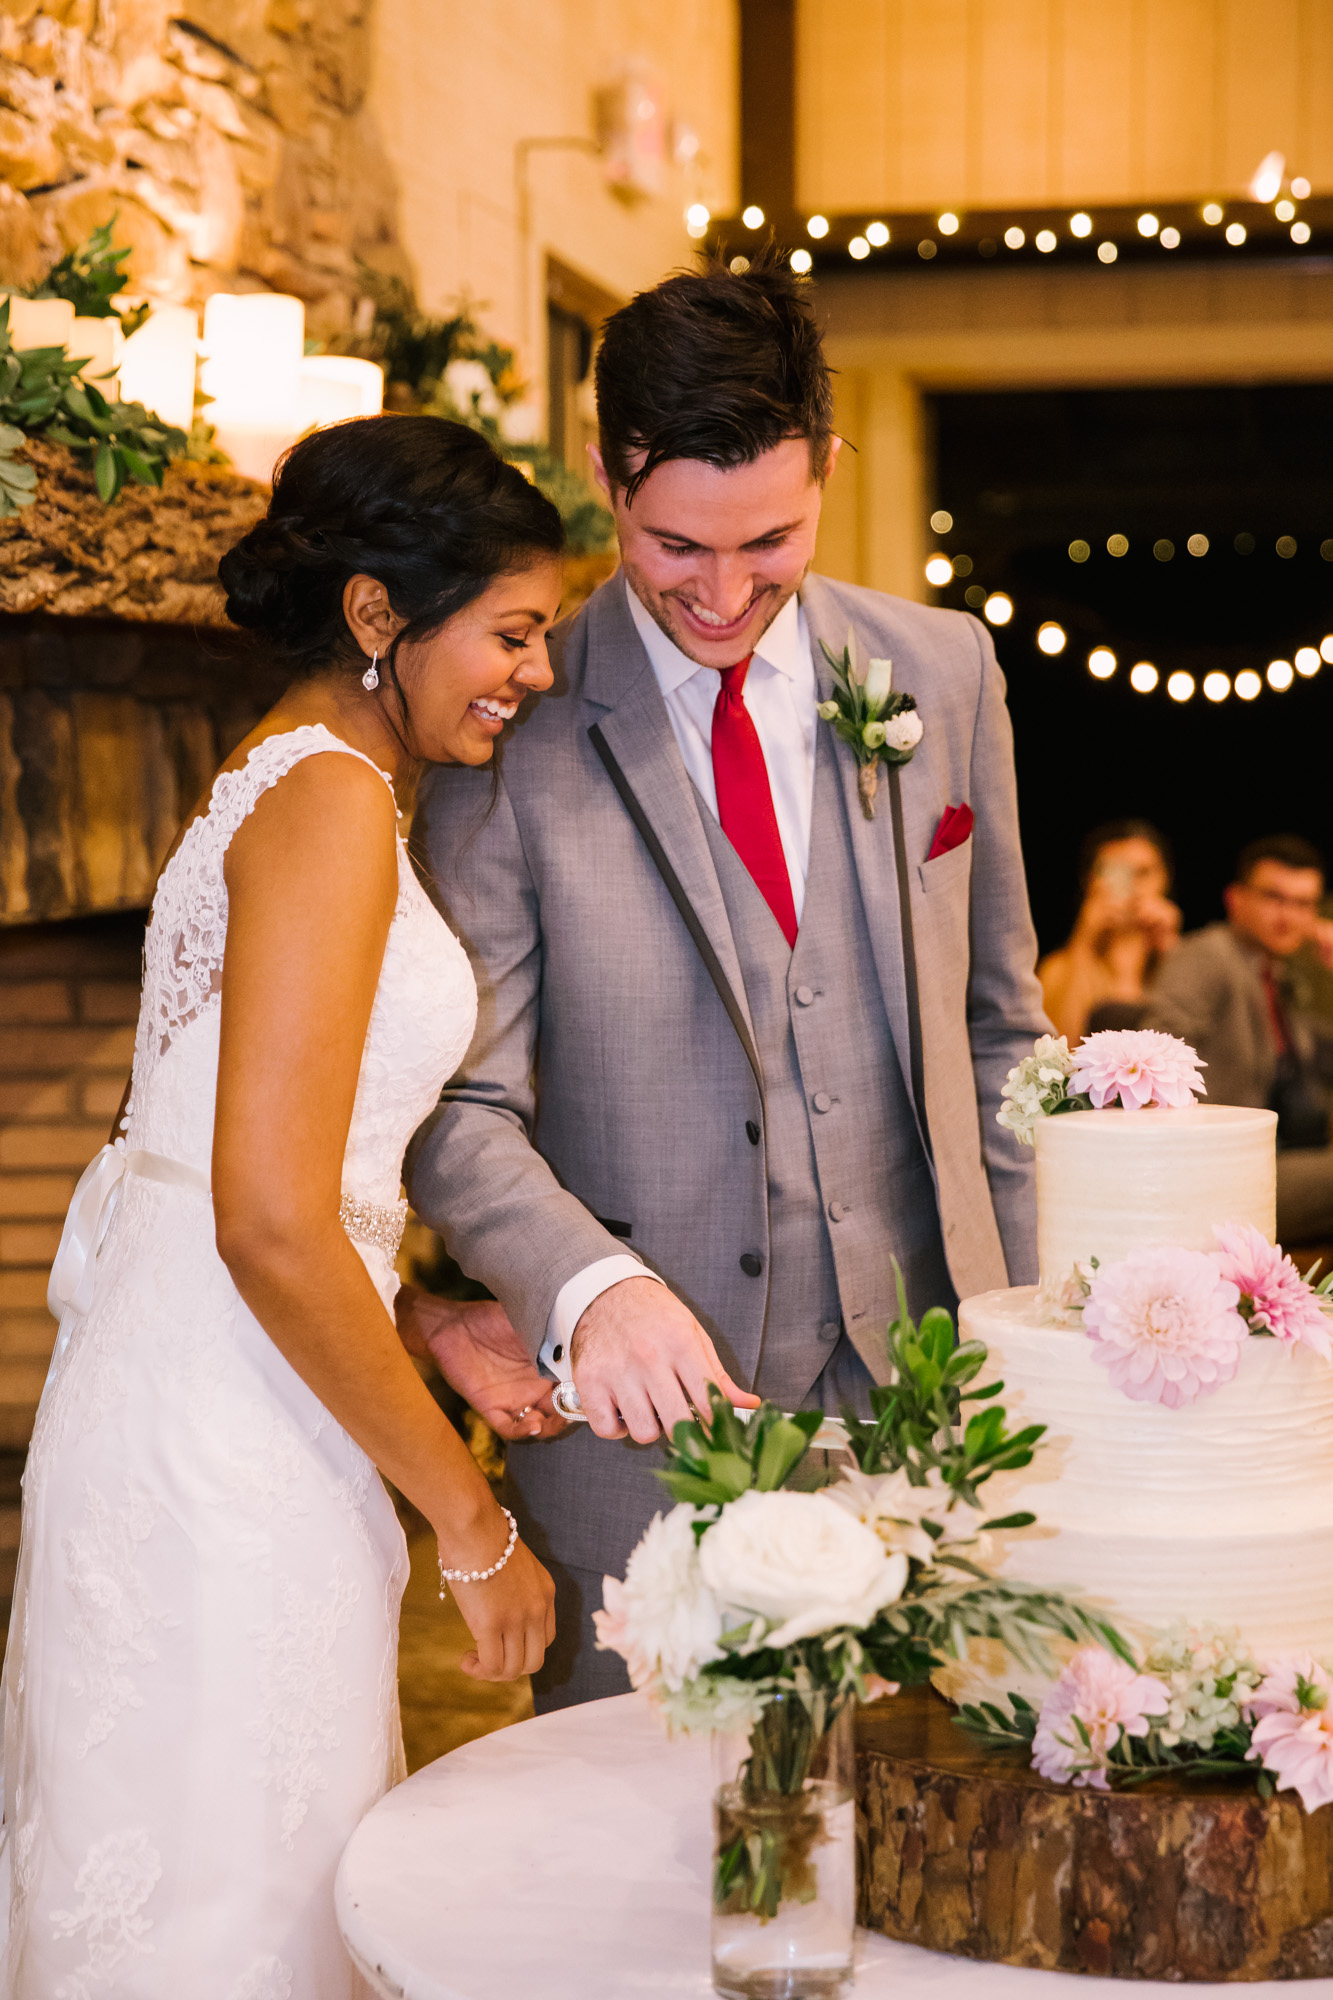 Waynesville NC Wedding Photography | Bride and Groom Cut Cake